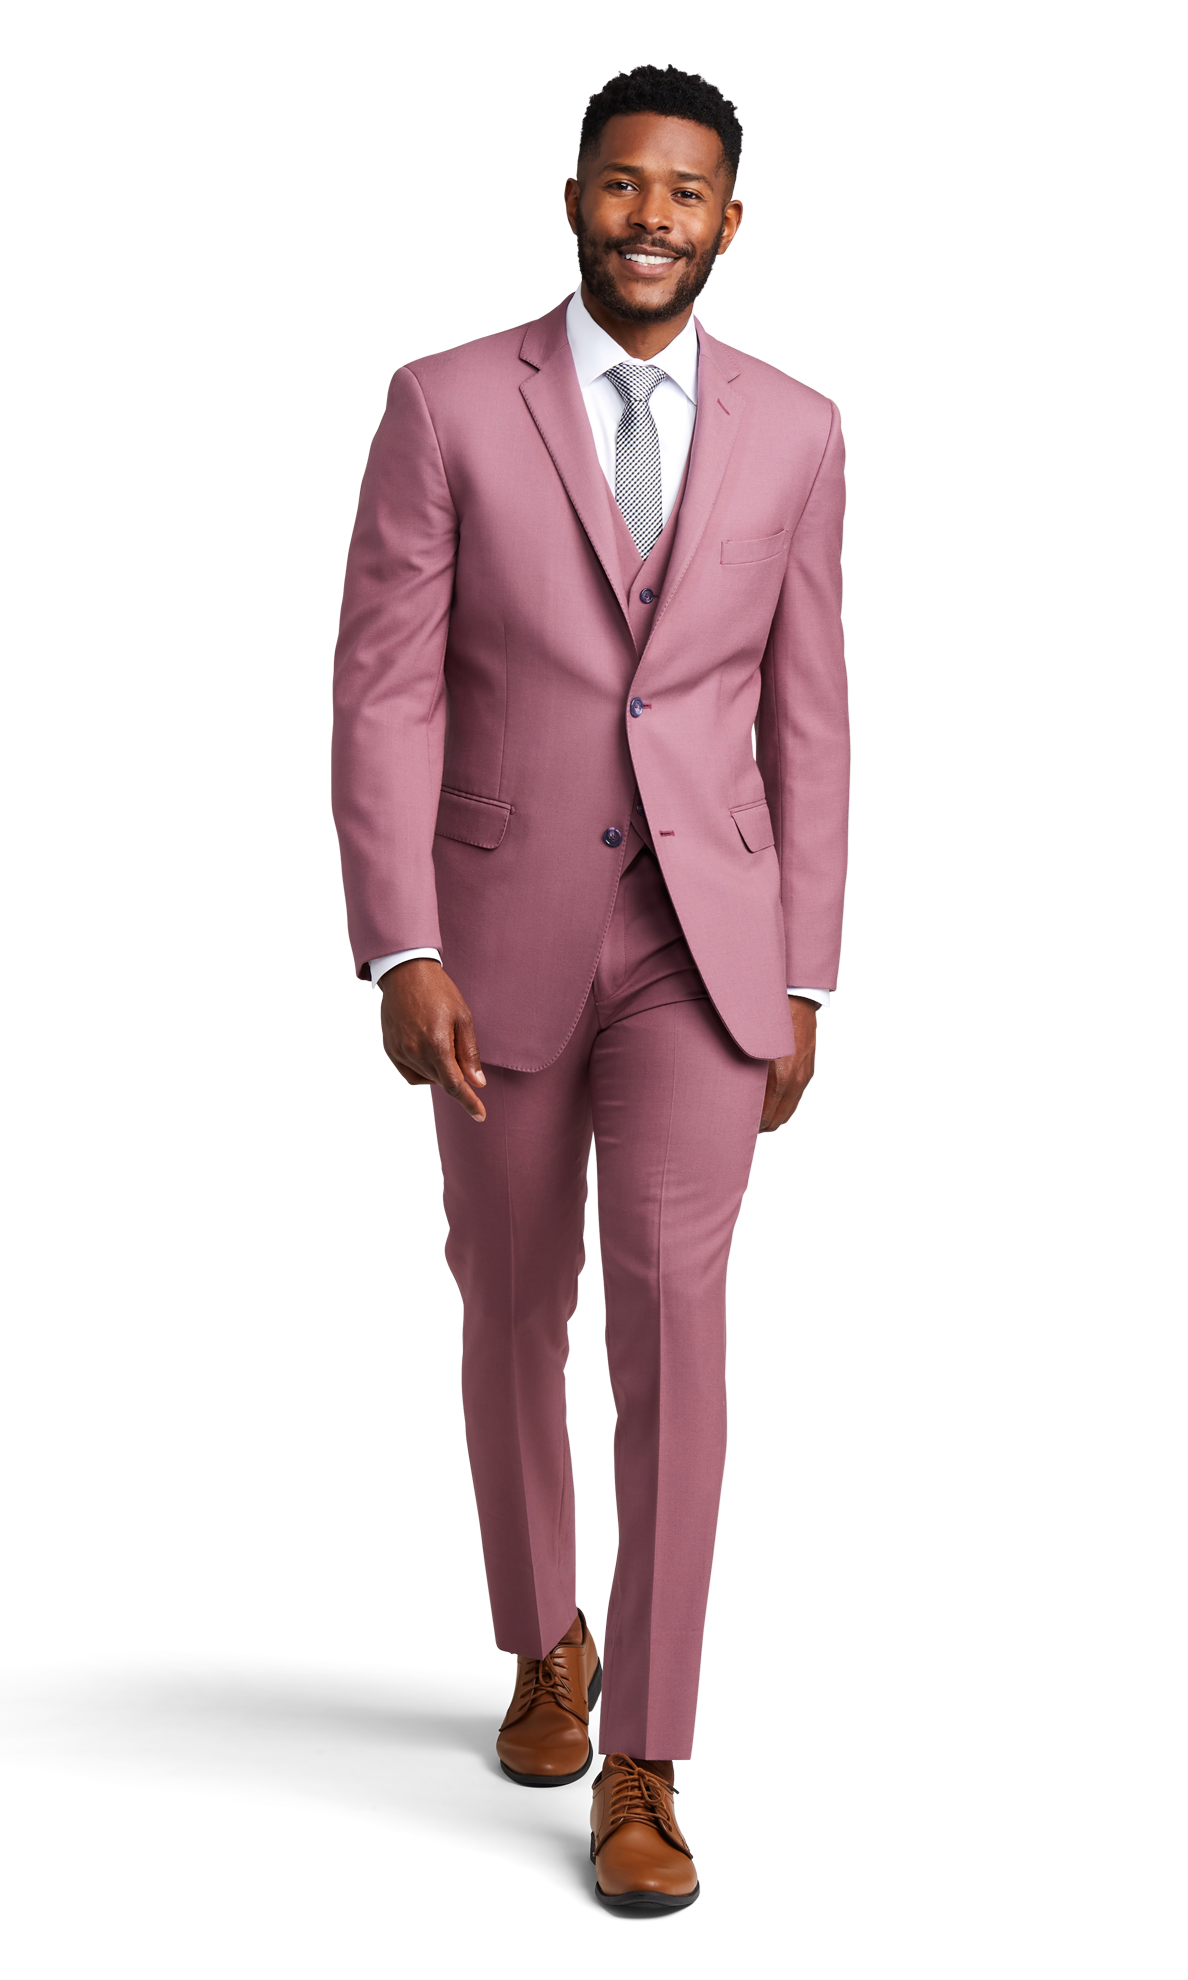 Rose Pink Suit Online Rental 1